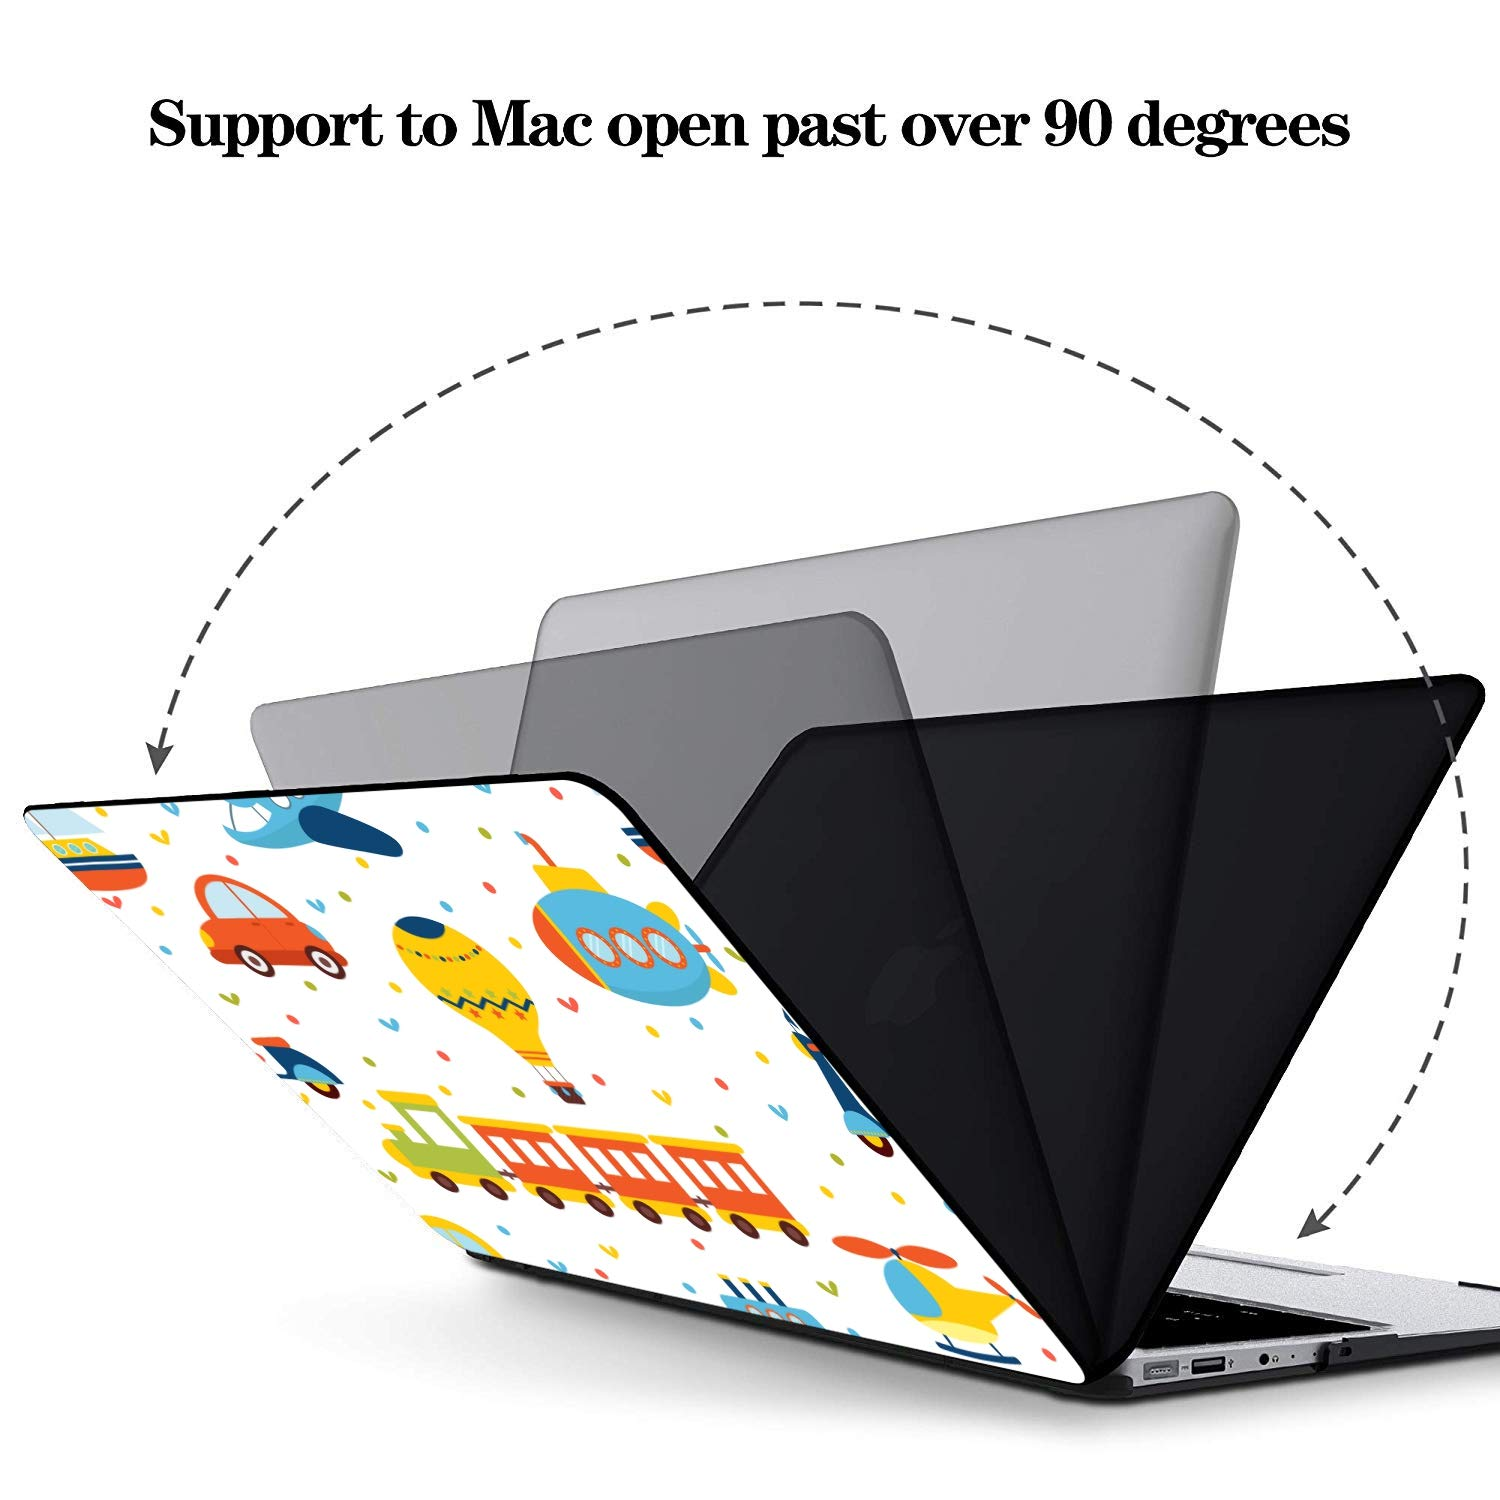 MacBook Pro Laptop Case Cartoon Transport Vehicle Plastic Hard Shell Compatible Mac Air 11 Pro 13 15 MacBook Air Case 13 Protection for MacBook 2016-2019 Version